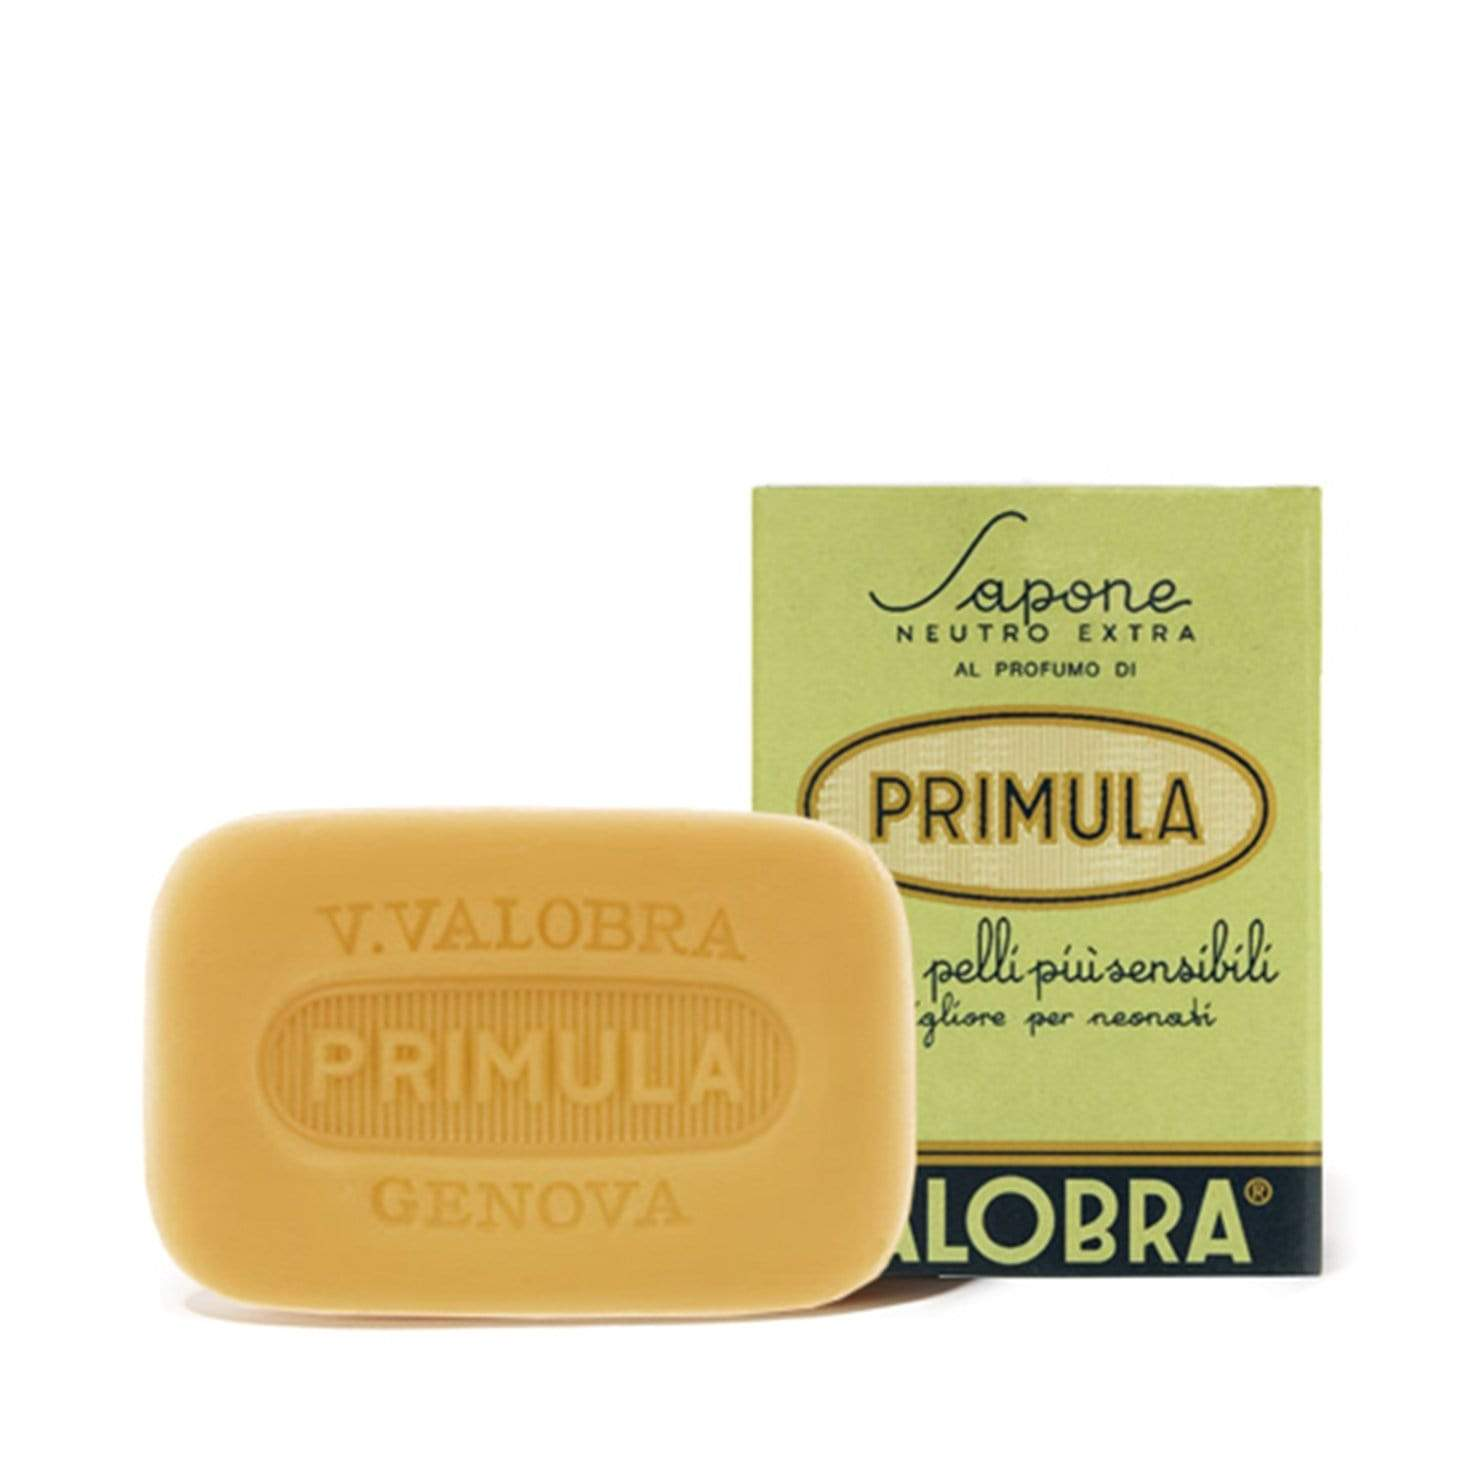 Valobra Primula 100gm Soap